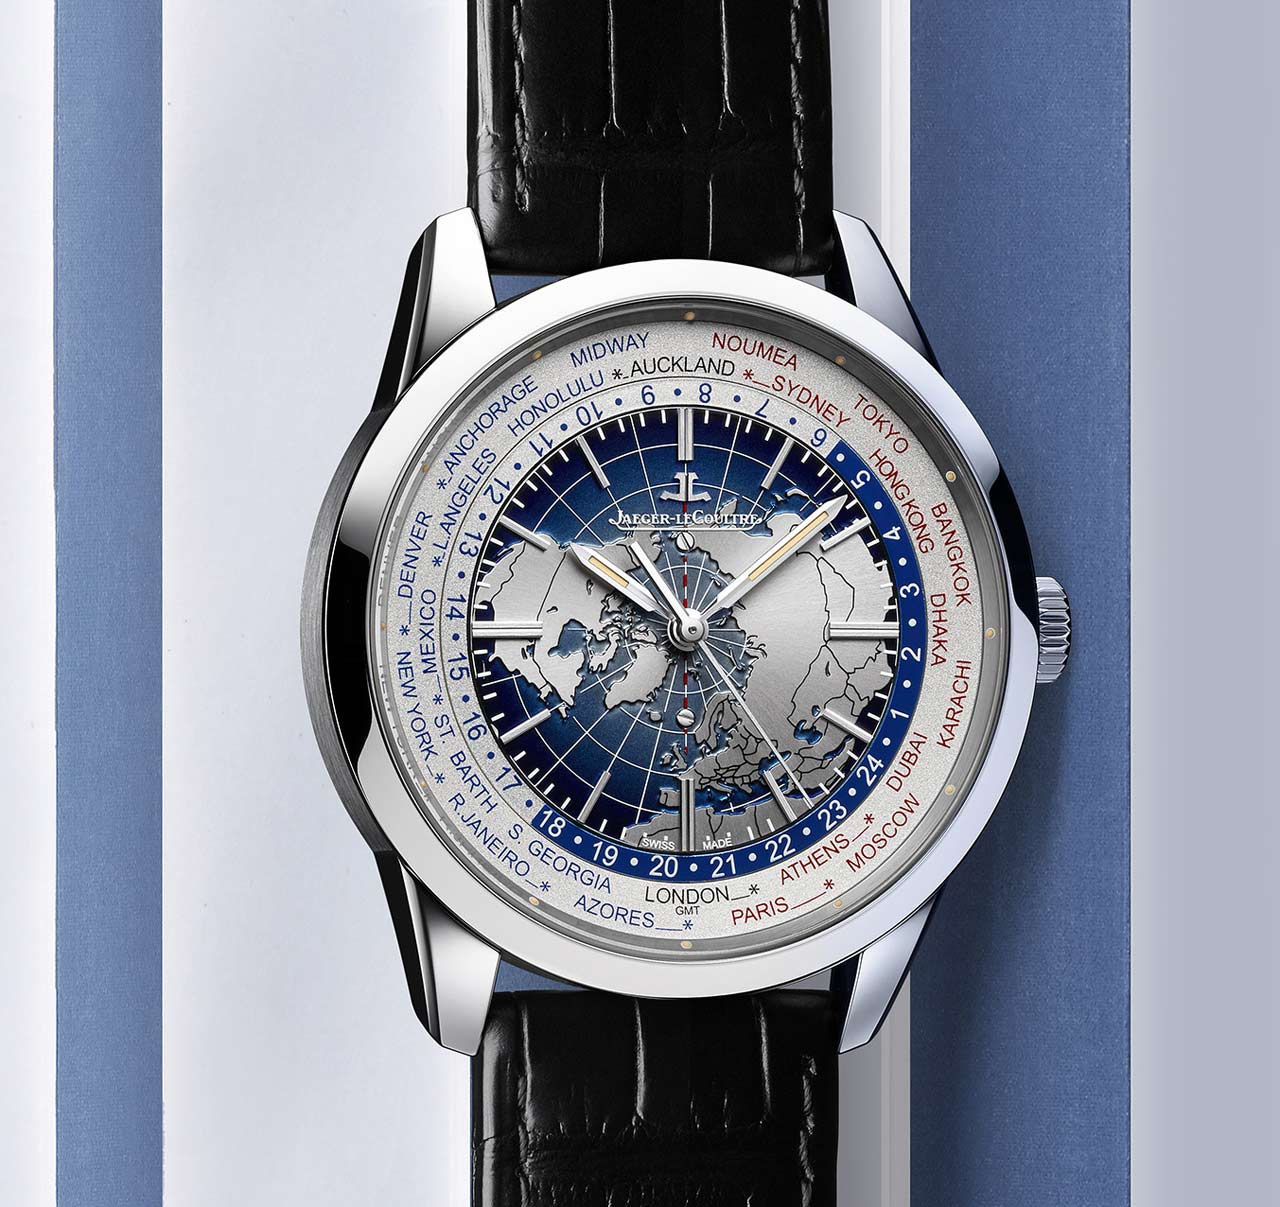 Jaeger-LeCoultre Geophysic Universal Time white gold version